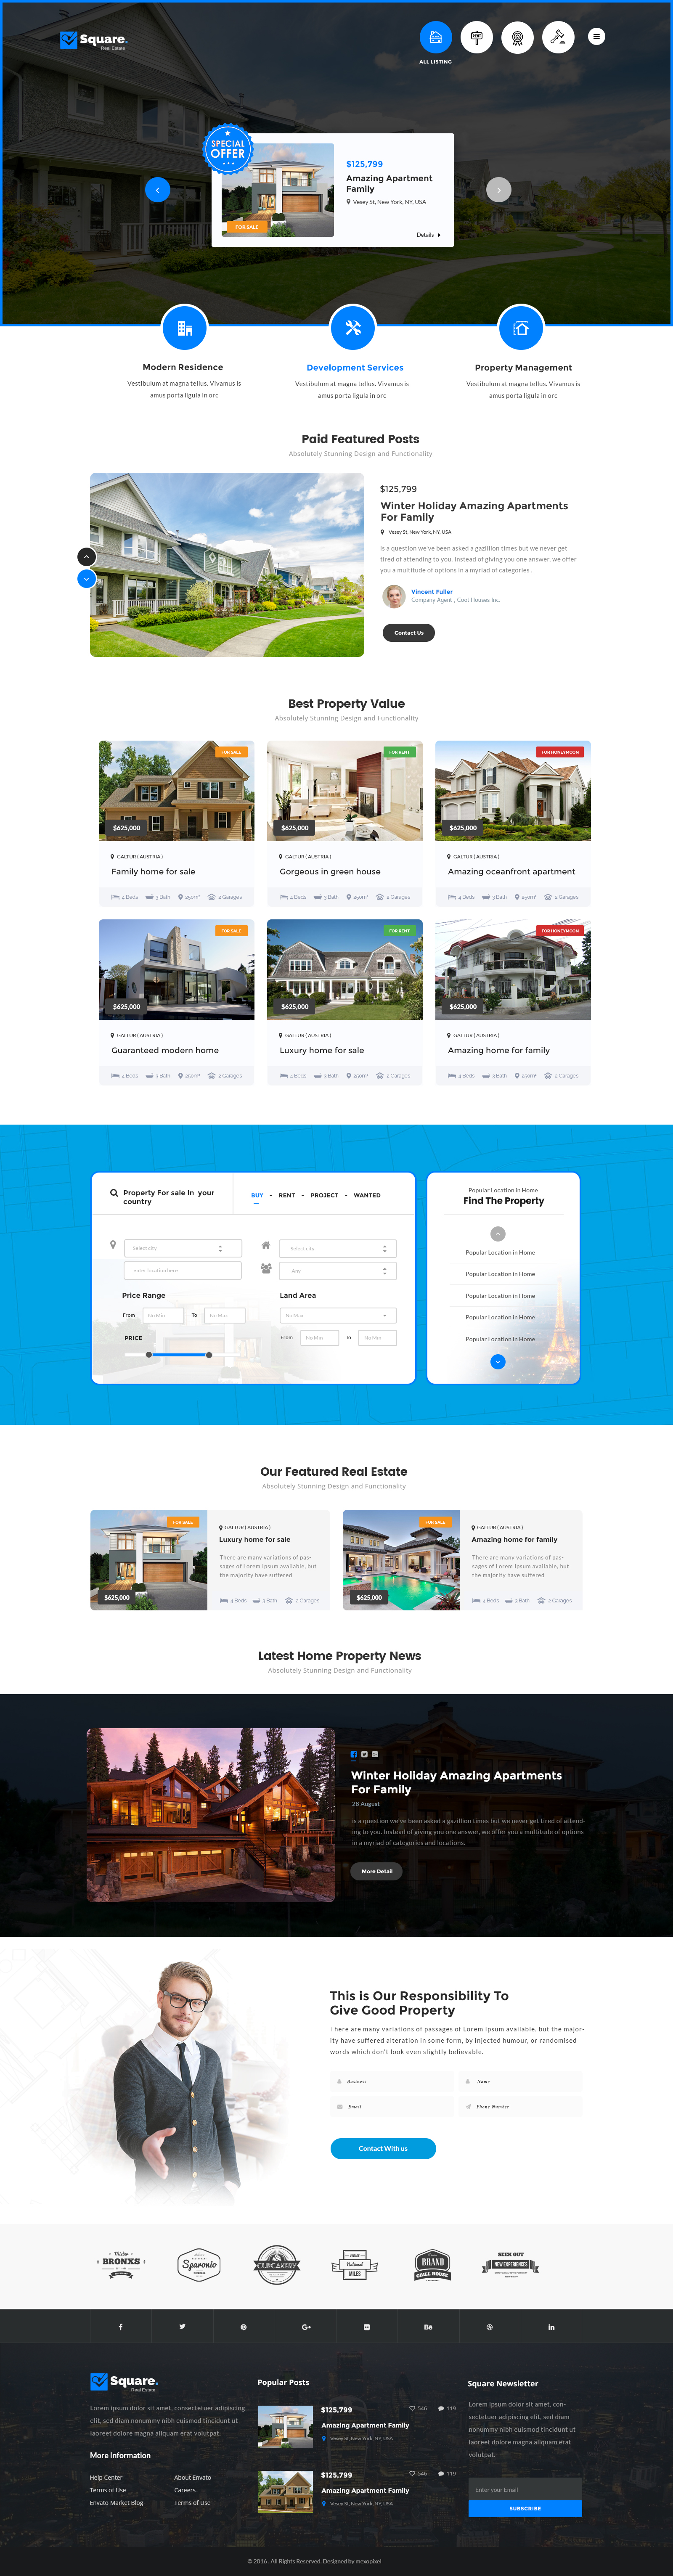 square professional real estate psd templates by mexopixel square professional real estate psd templates